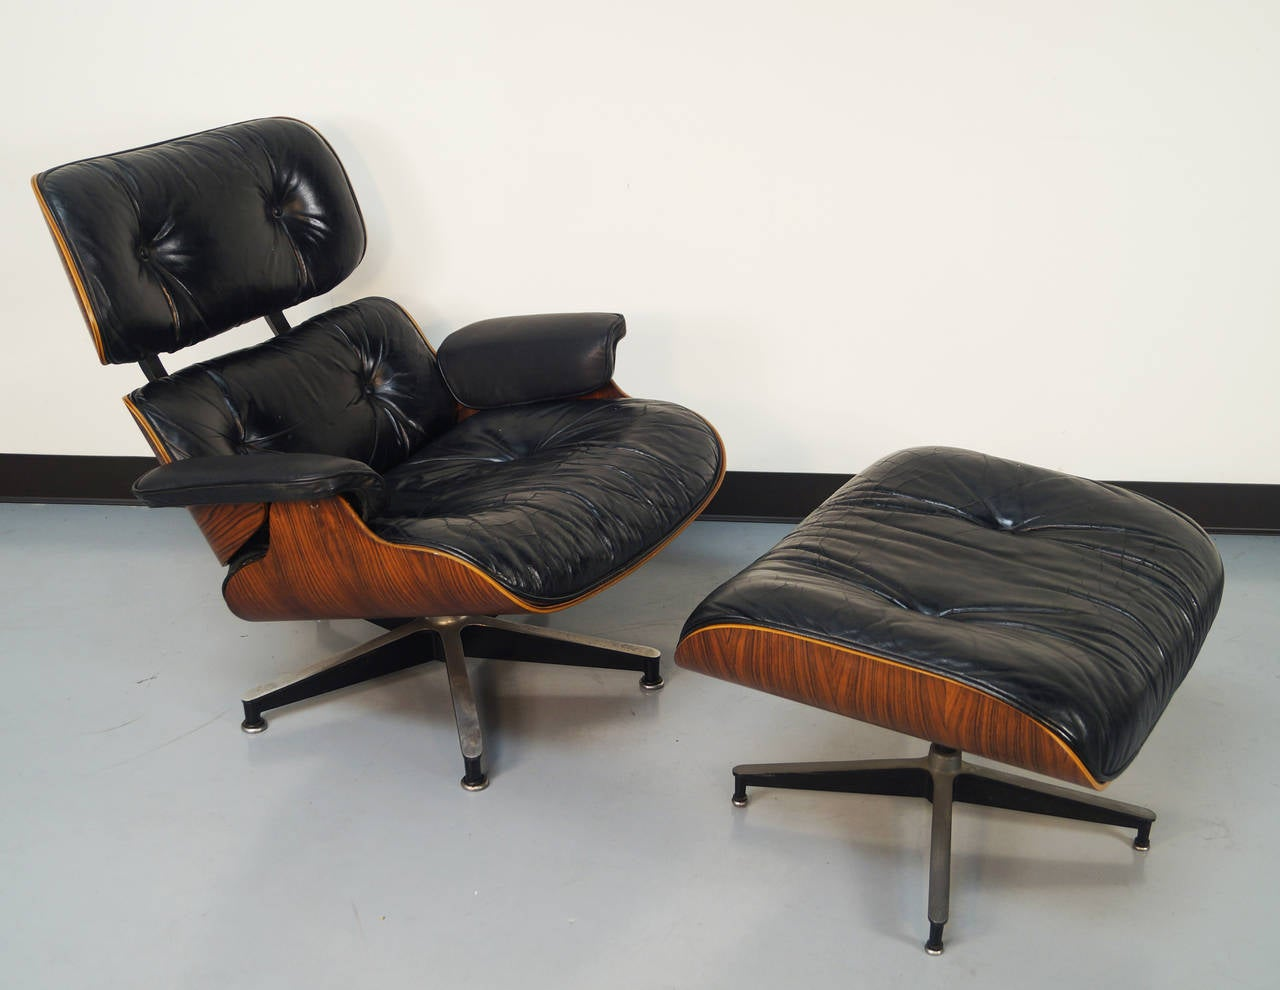 Charles Eames Lounge Chair Rosewood Charles Eames Lounge Chair And Ottoman For Herman